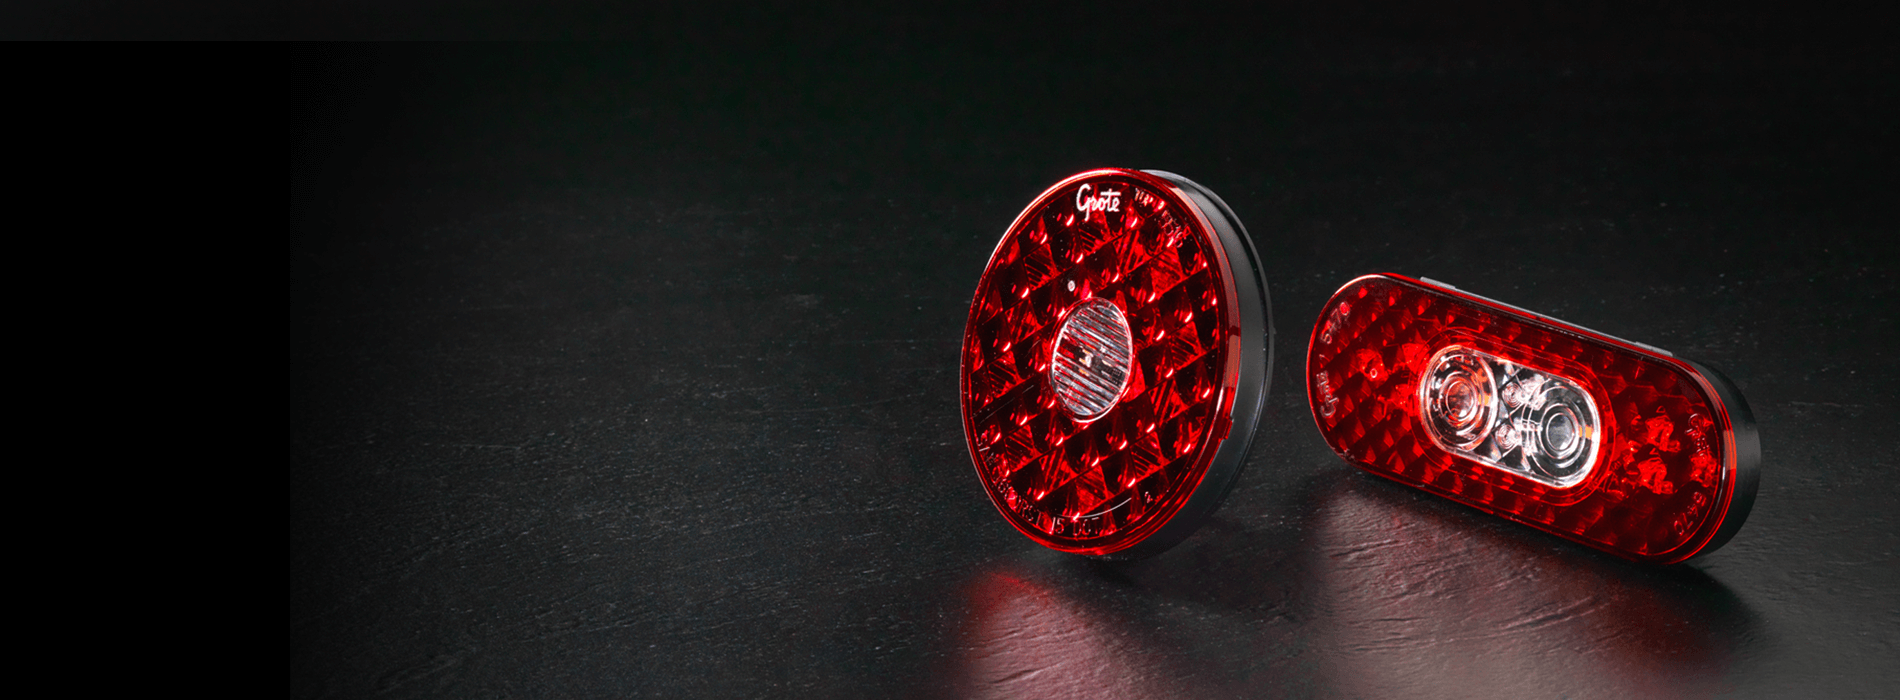 4-in-1 LED Stop Tail Turn Lights with Integrated Backup